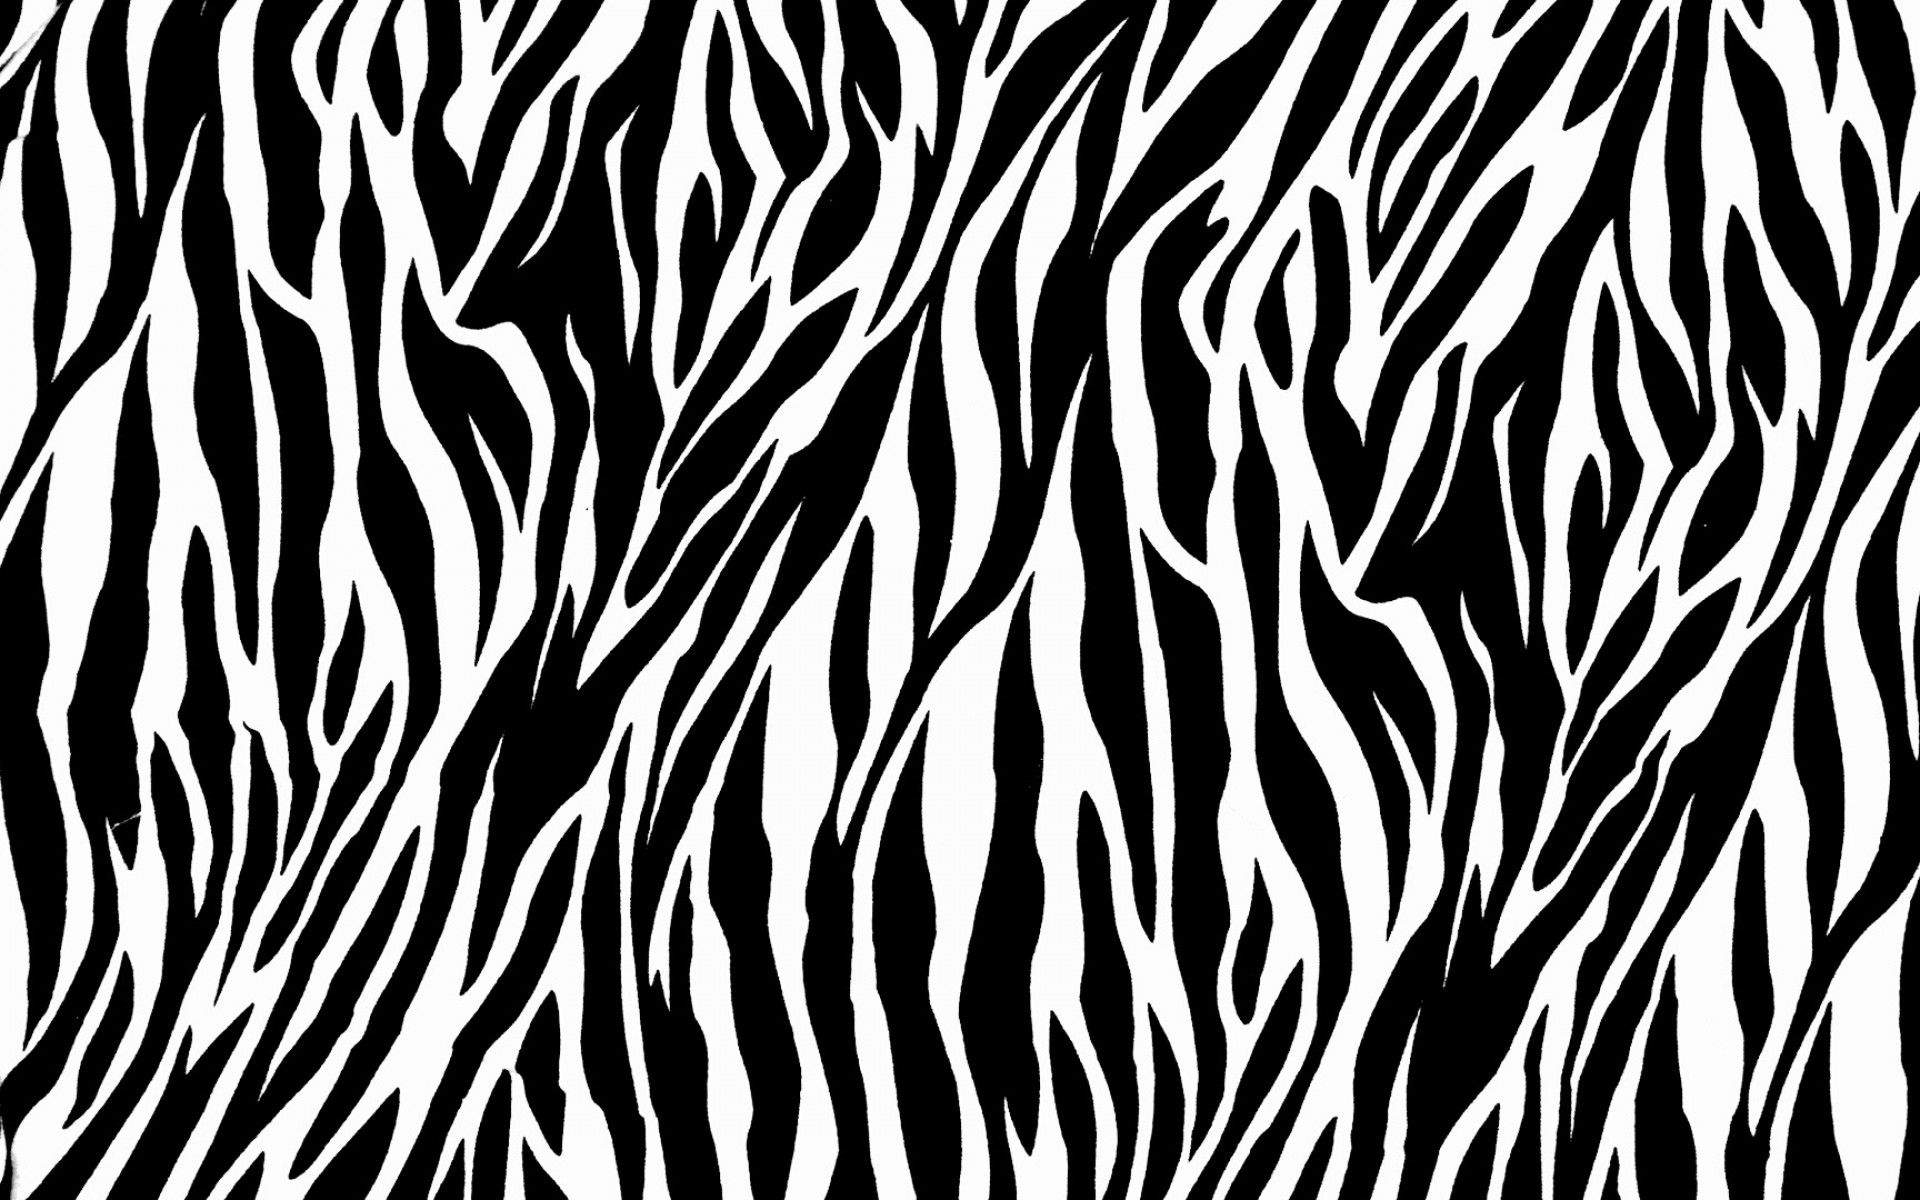 Zebra Print Wallpaper Collection (43 ) - Zebra Print PNG